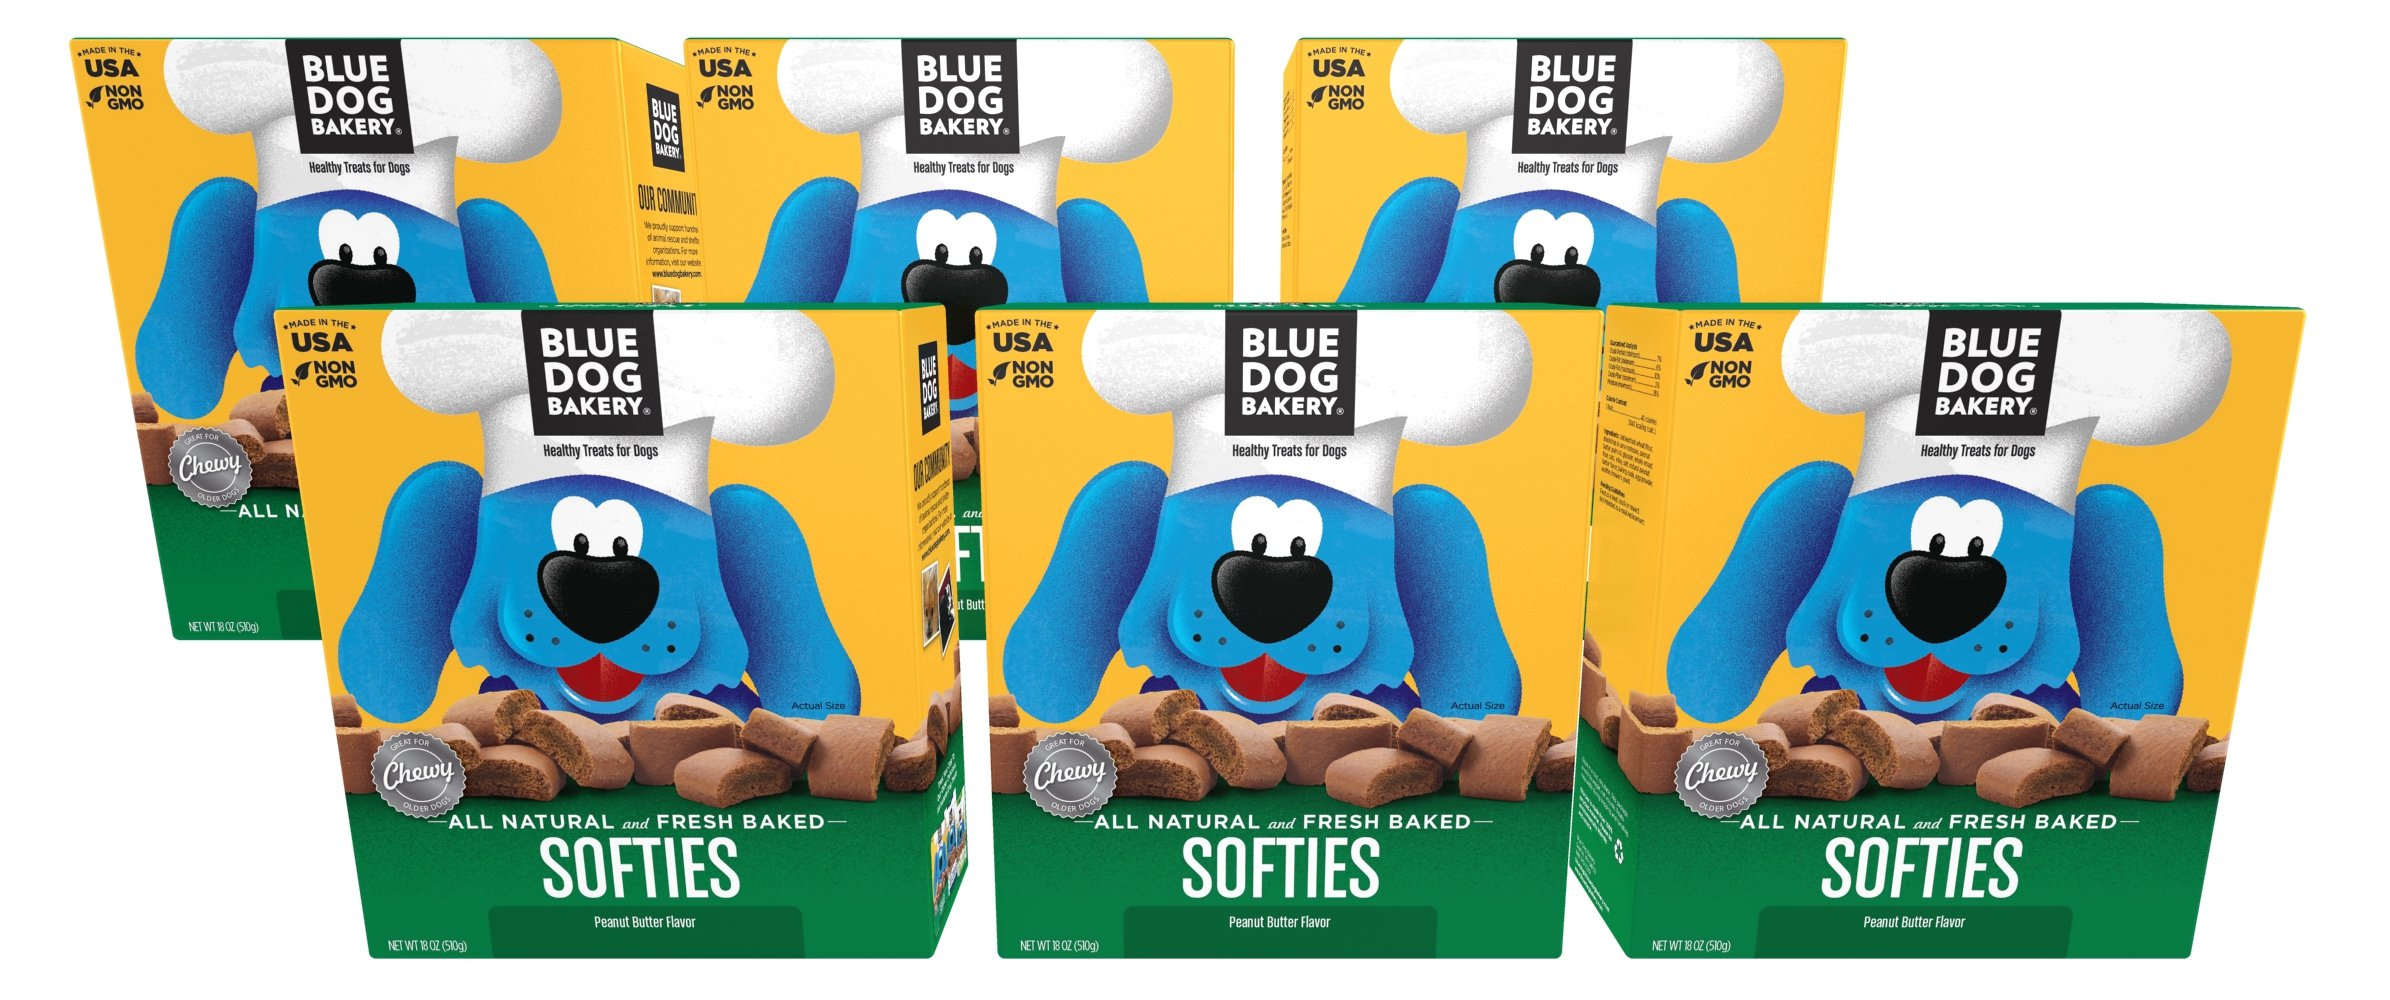 Blue Dog Bakery | Soft & Chewy Dog Treats | All-Natural | Peanut Butter